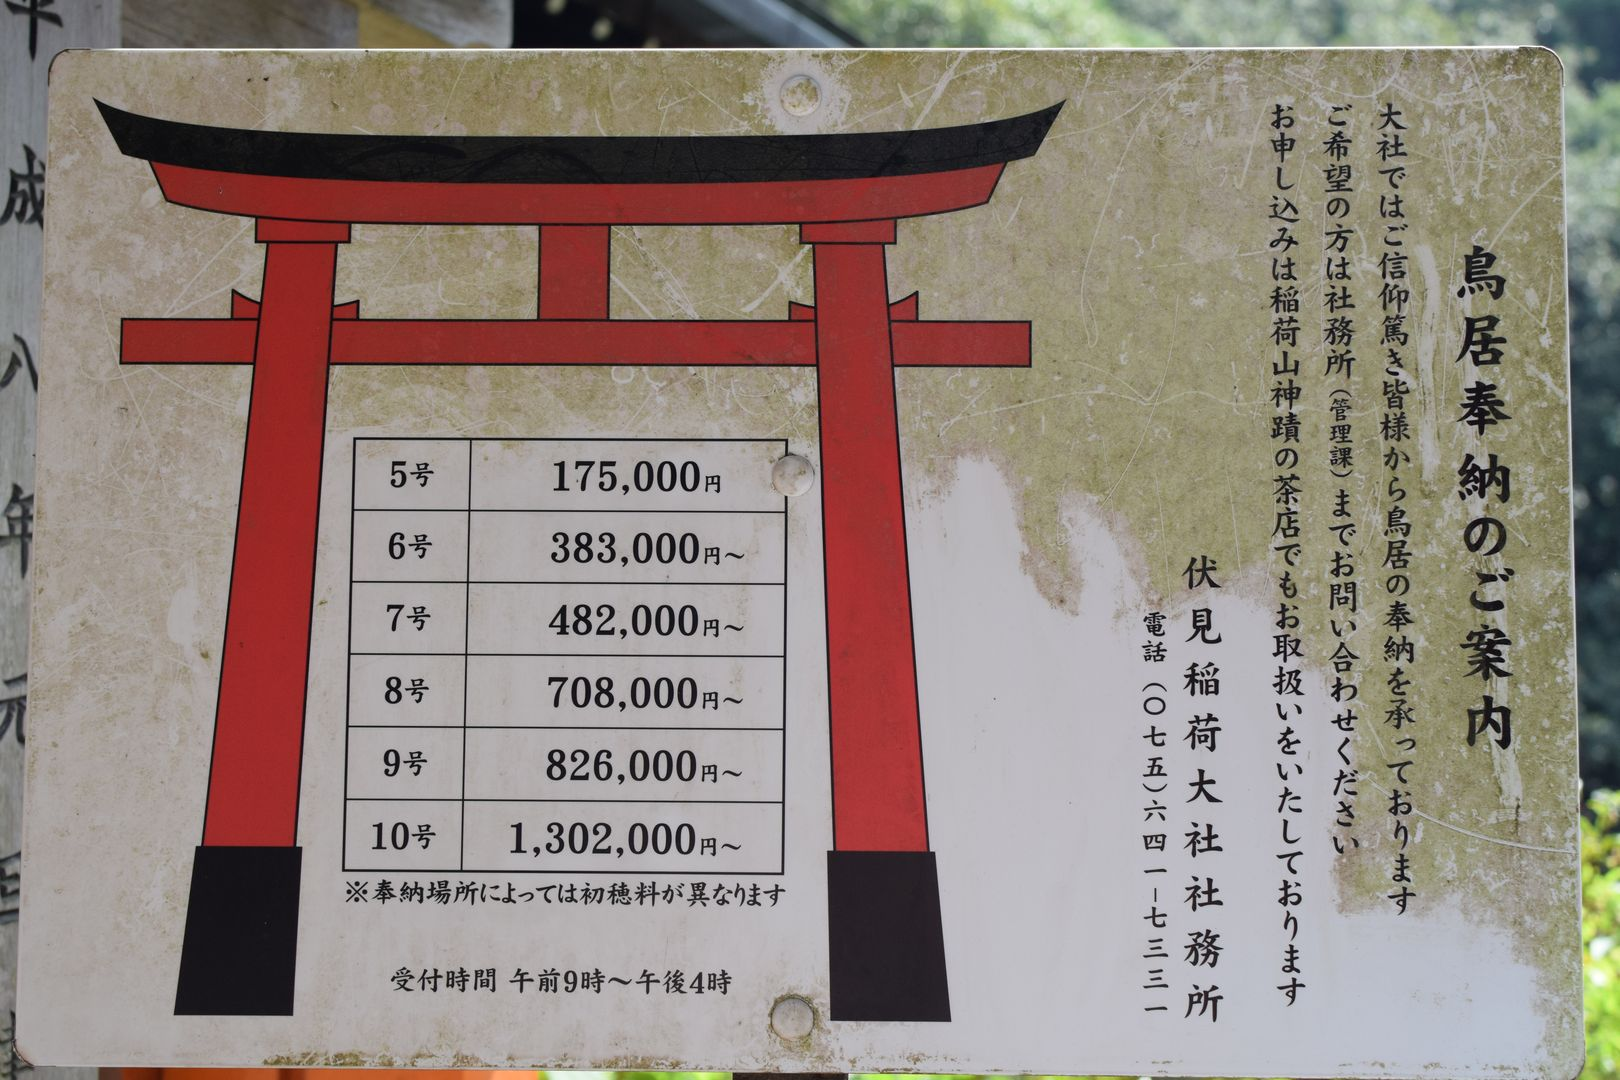 price of Torii at Fushimi Inari Taisha, Kyoto